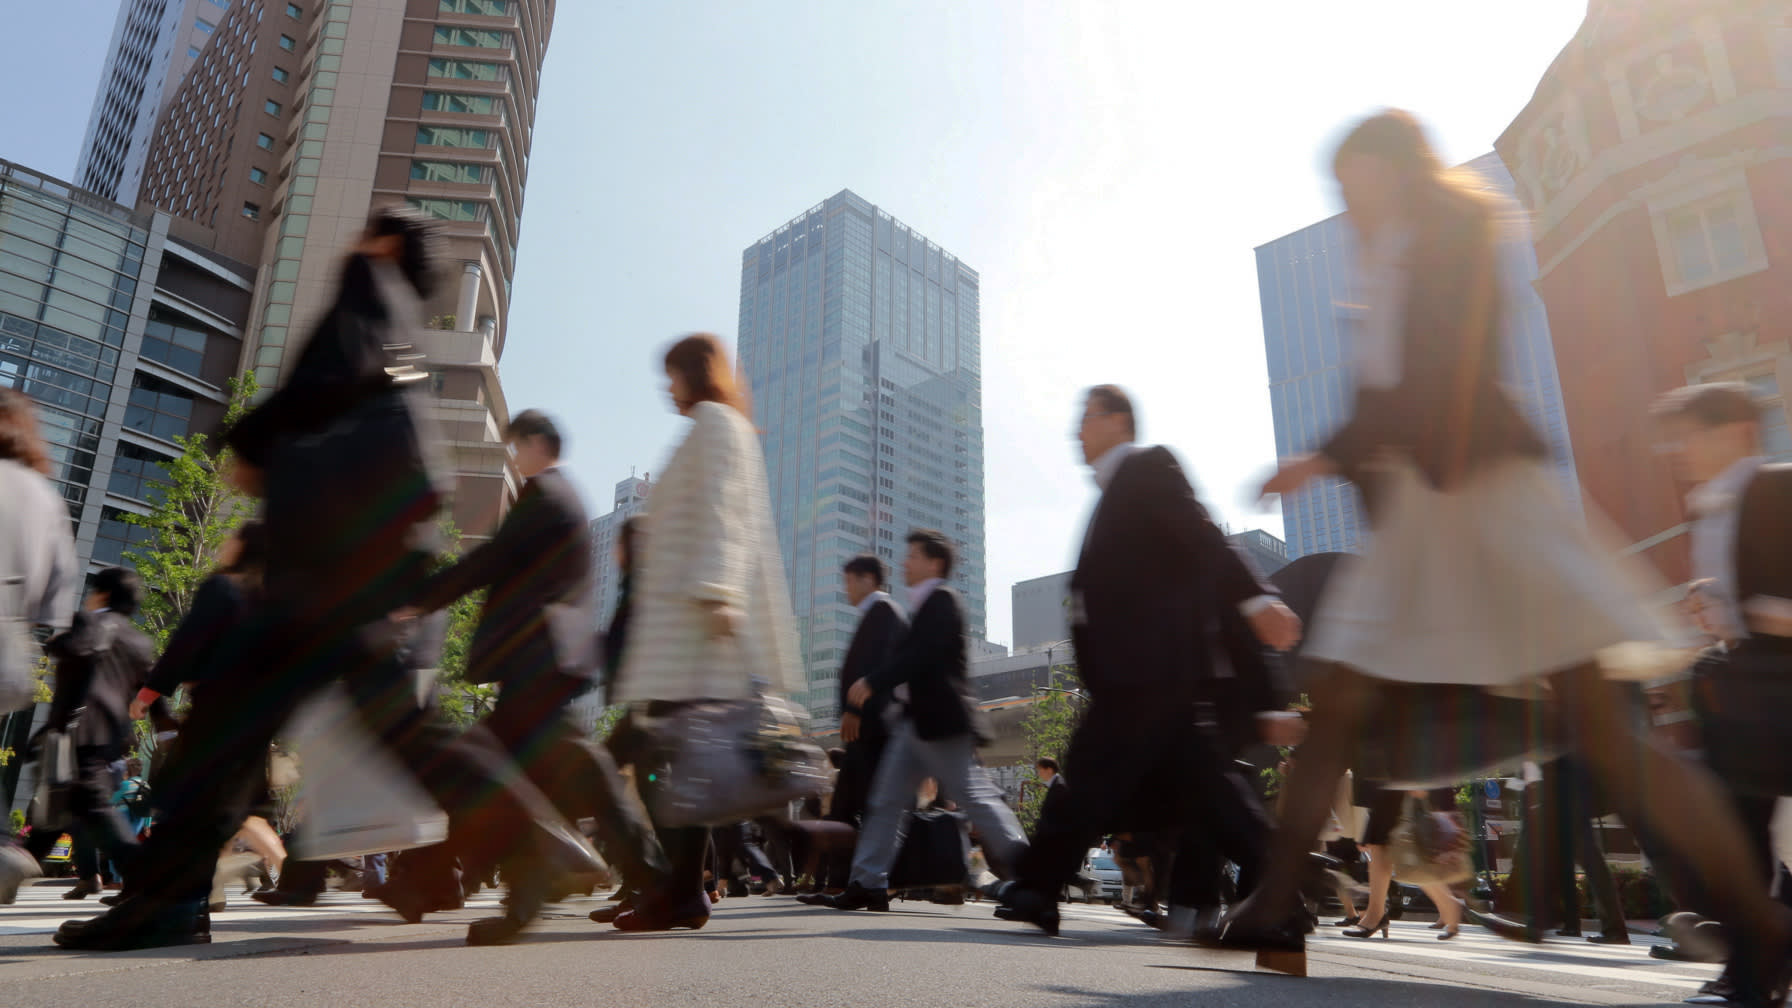 Japan's workers win biggest pay raises in 20 years - Nikkei